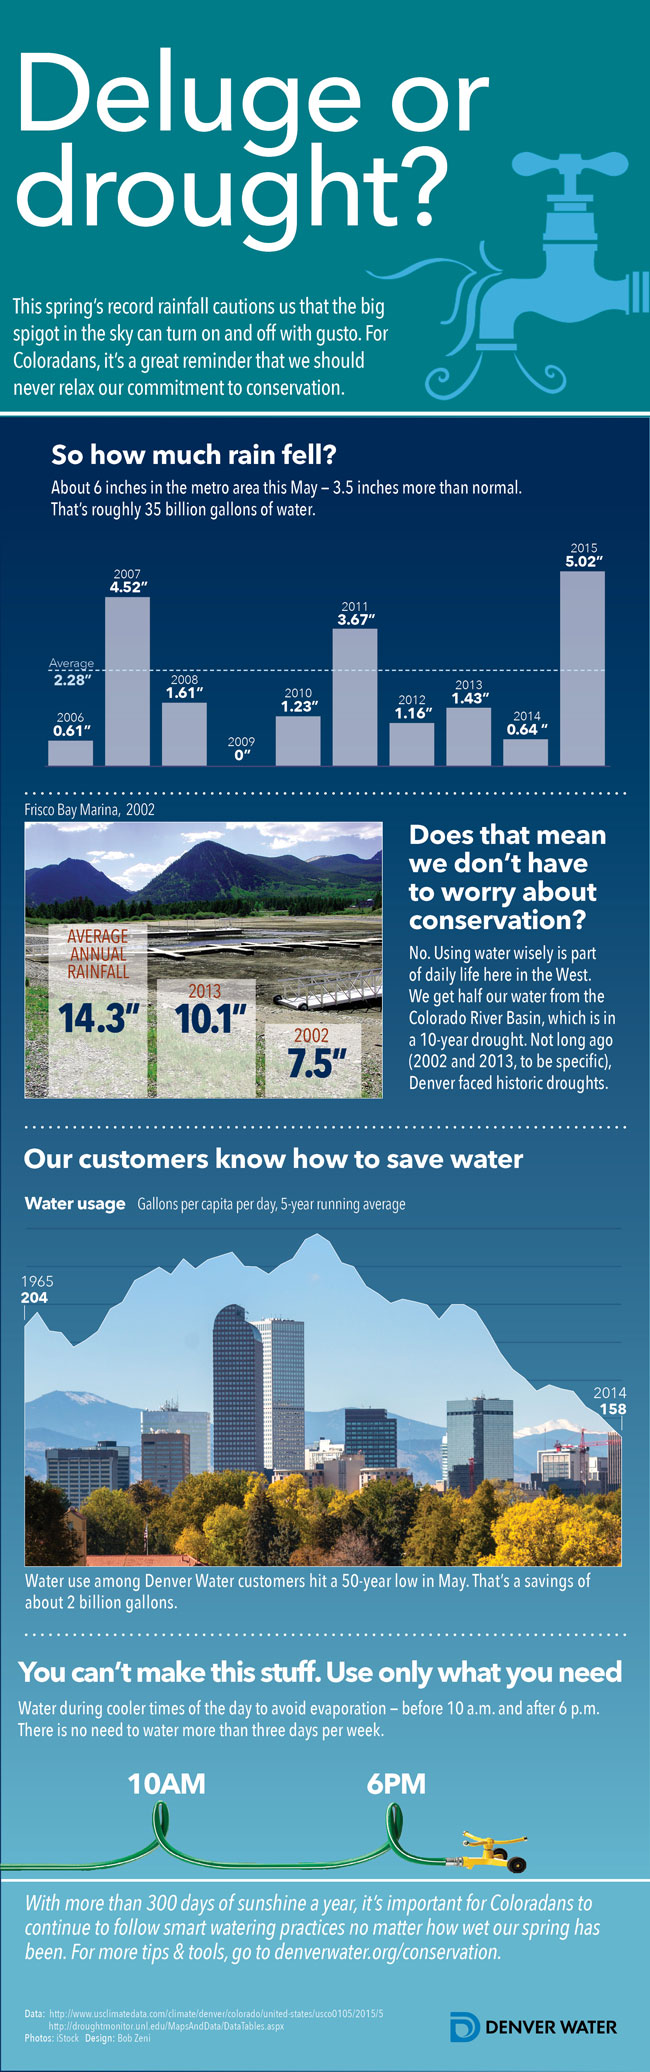 infographic on water usage in Denver Metro Area